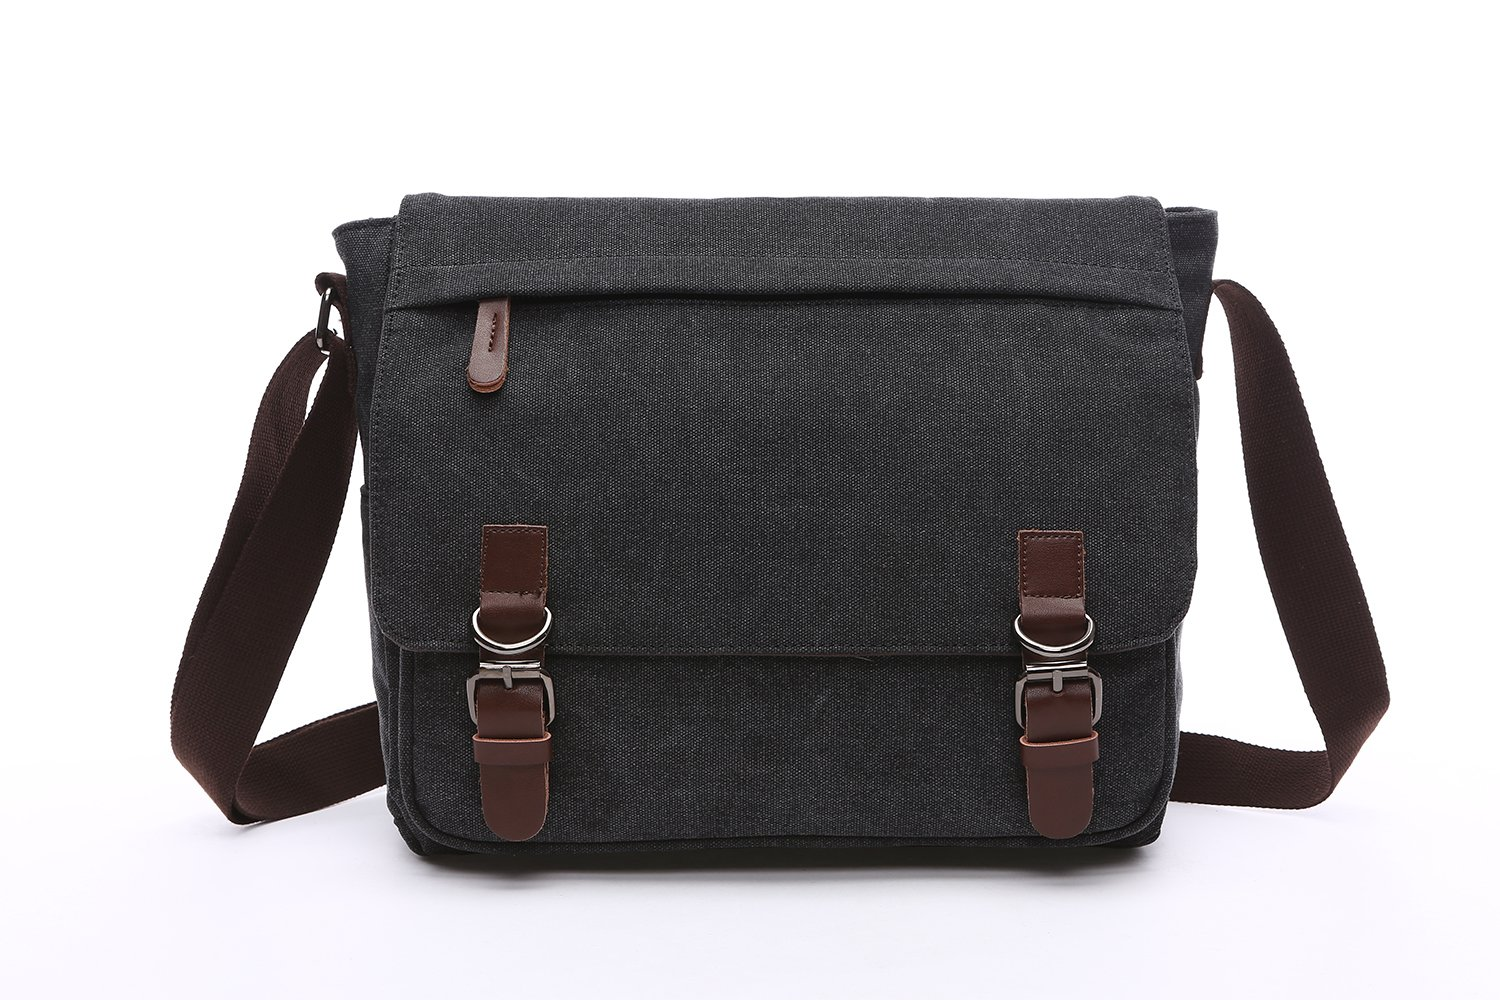 Amazon.com: Mestart Messenger Bag School Bag Business Briefcase ...